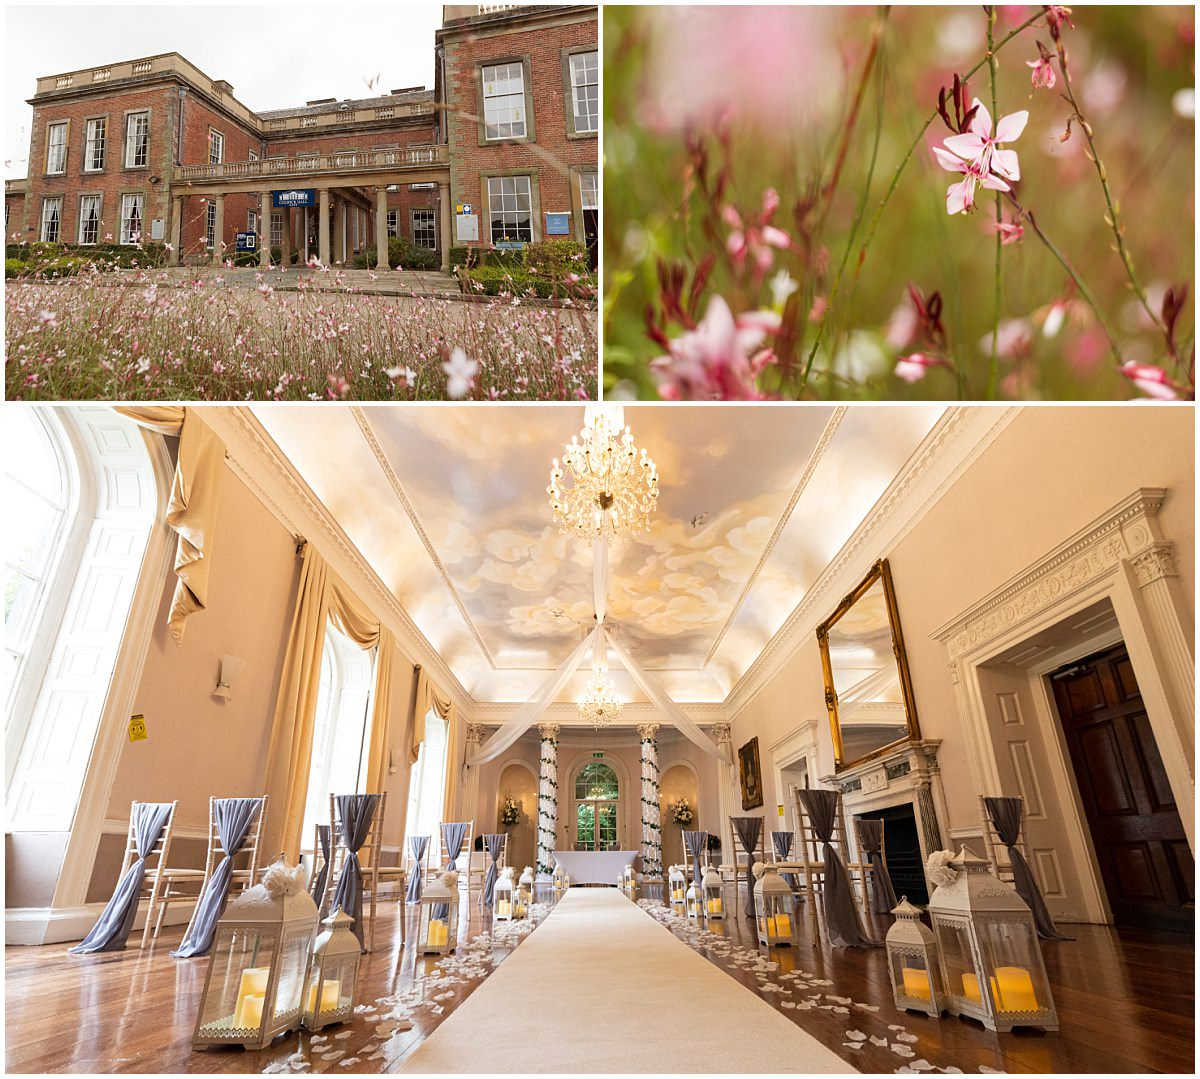 Wedding at Colwick Hall rOOM DETAILS